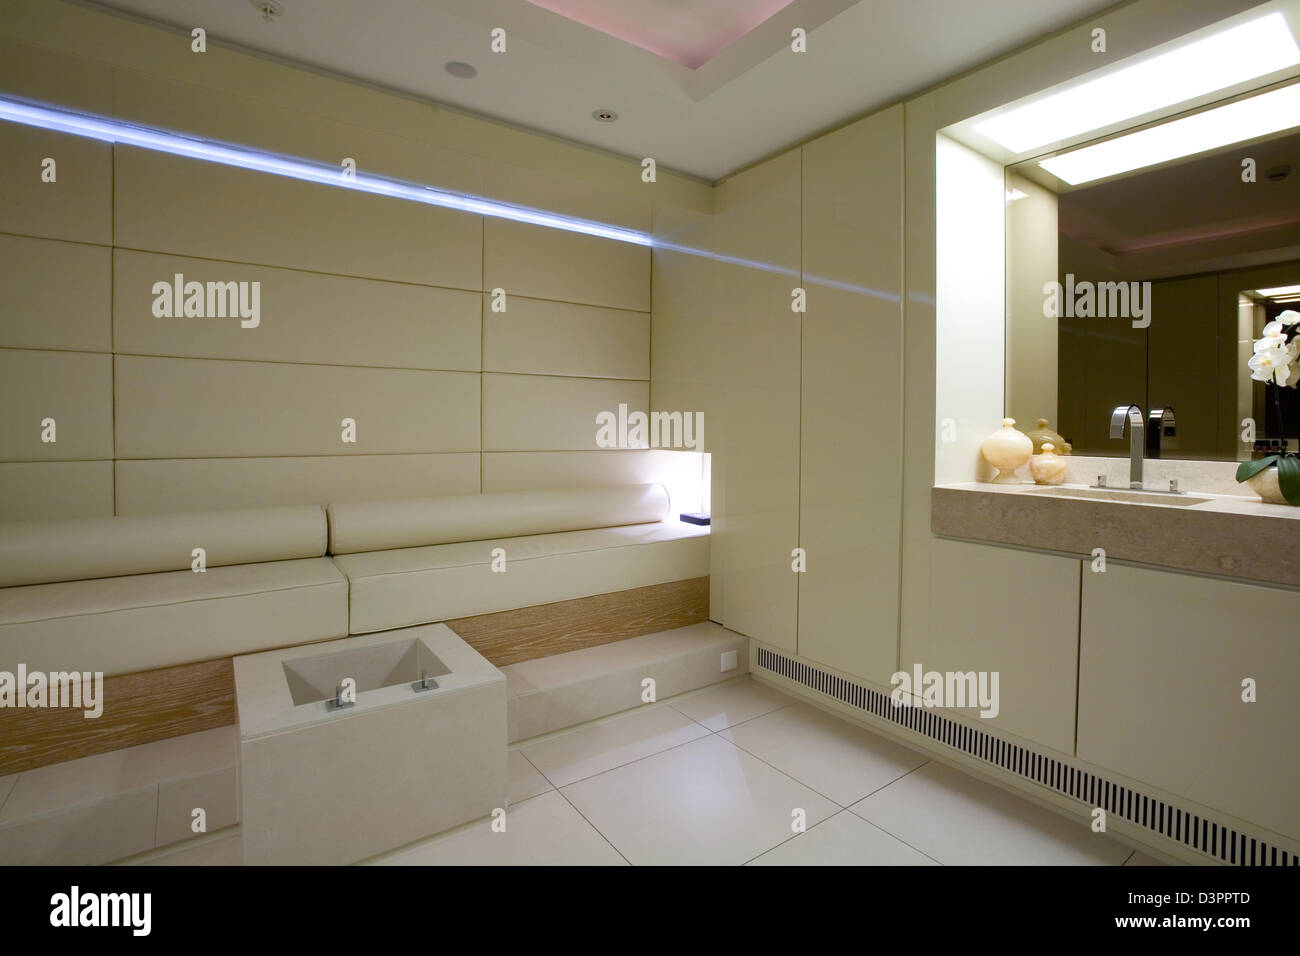 Berlin, Germany, a treatment room in the Adlon Day Spa - Stock Image